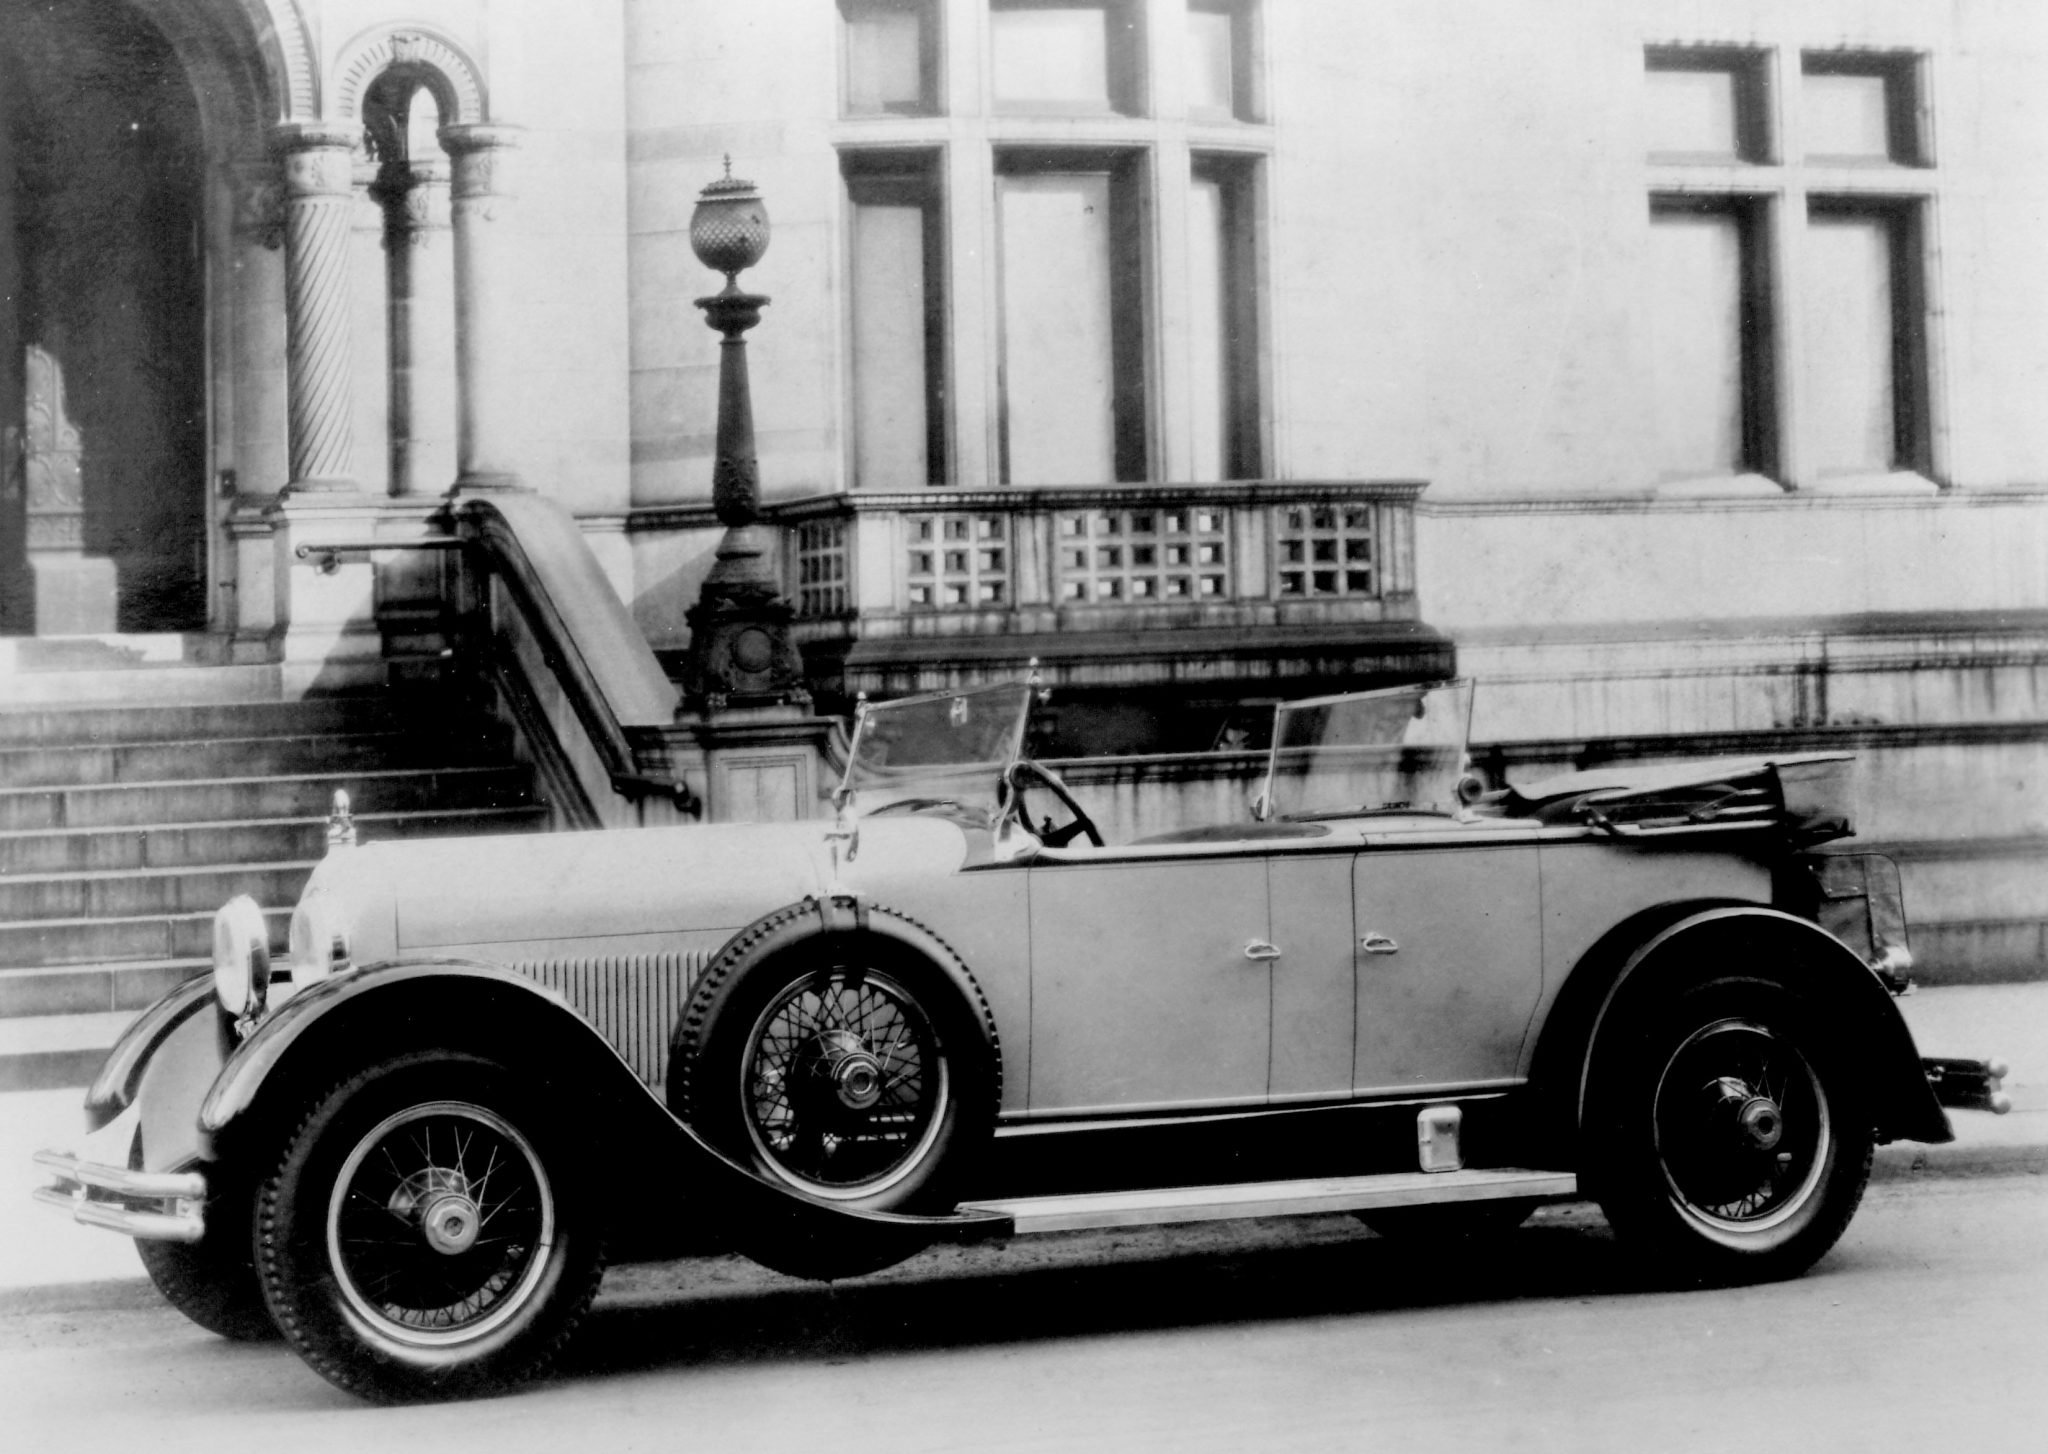 Among the leading coachbuilders for the Duesenberg Model A was Locke & Co. of New York. Although formal vehicles were Locke's forte, this sporty dual-cowl phaeton was built on the 134-inch chassis in 1927, very near the end of the model's production.